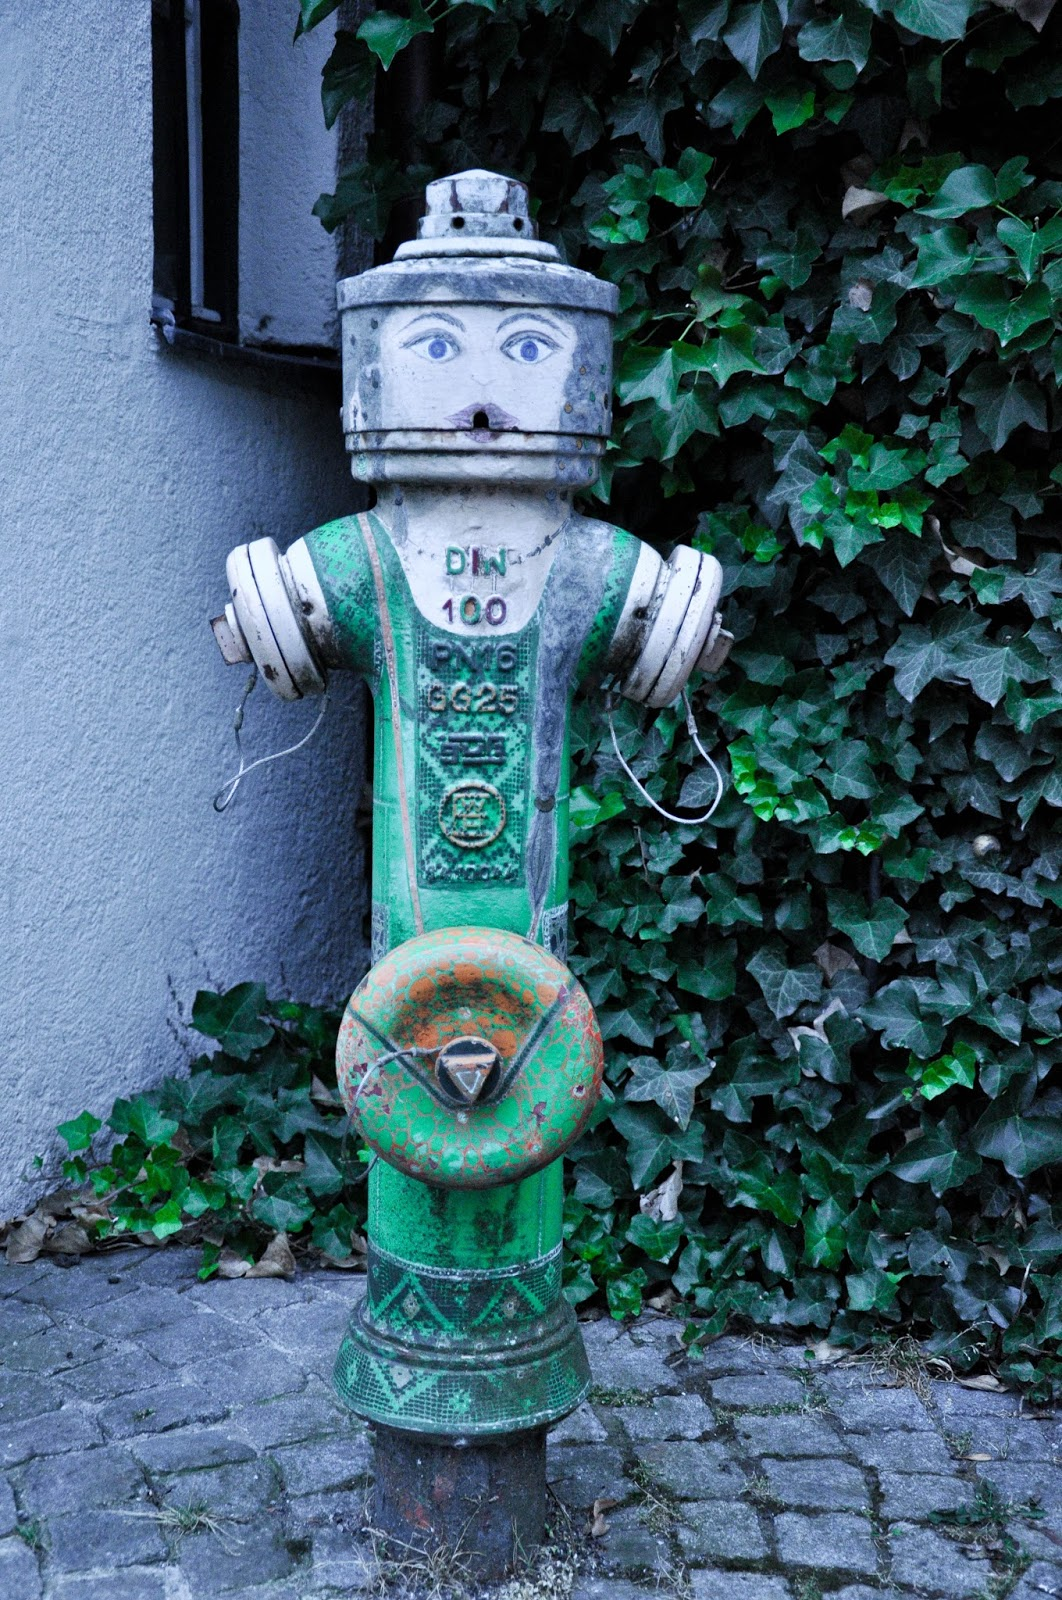 Water hydrant, Kaufbeuren, Bavaria, Germany